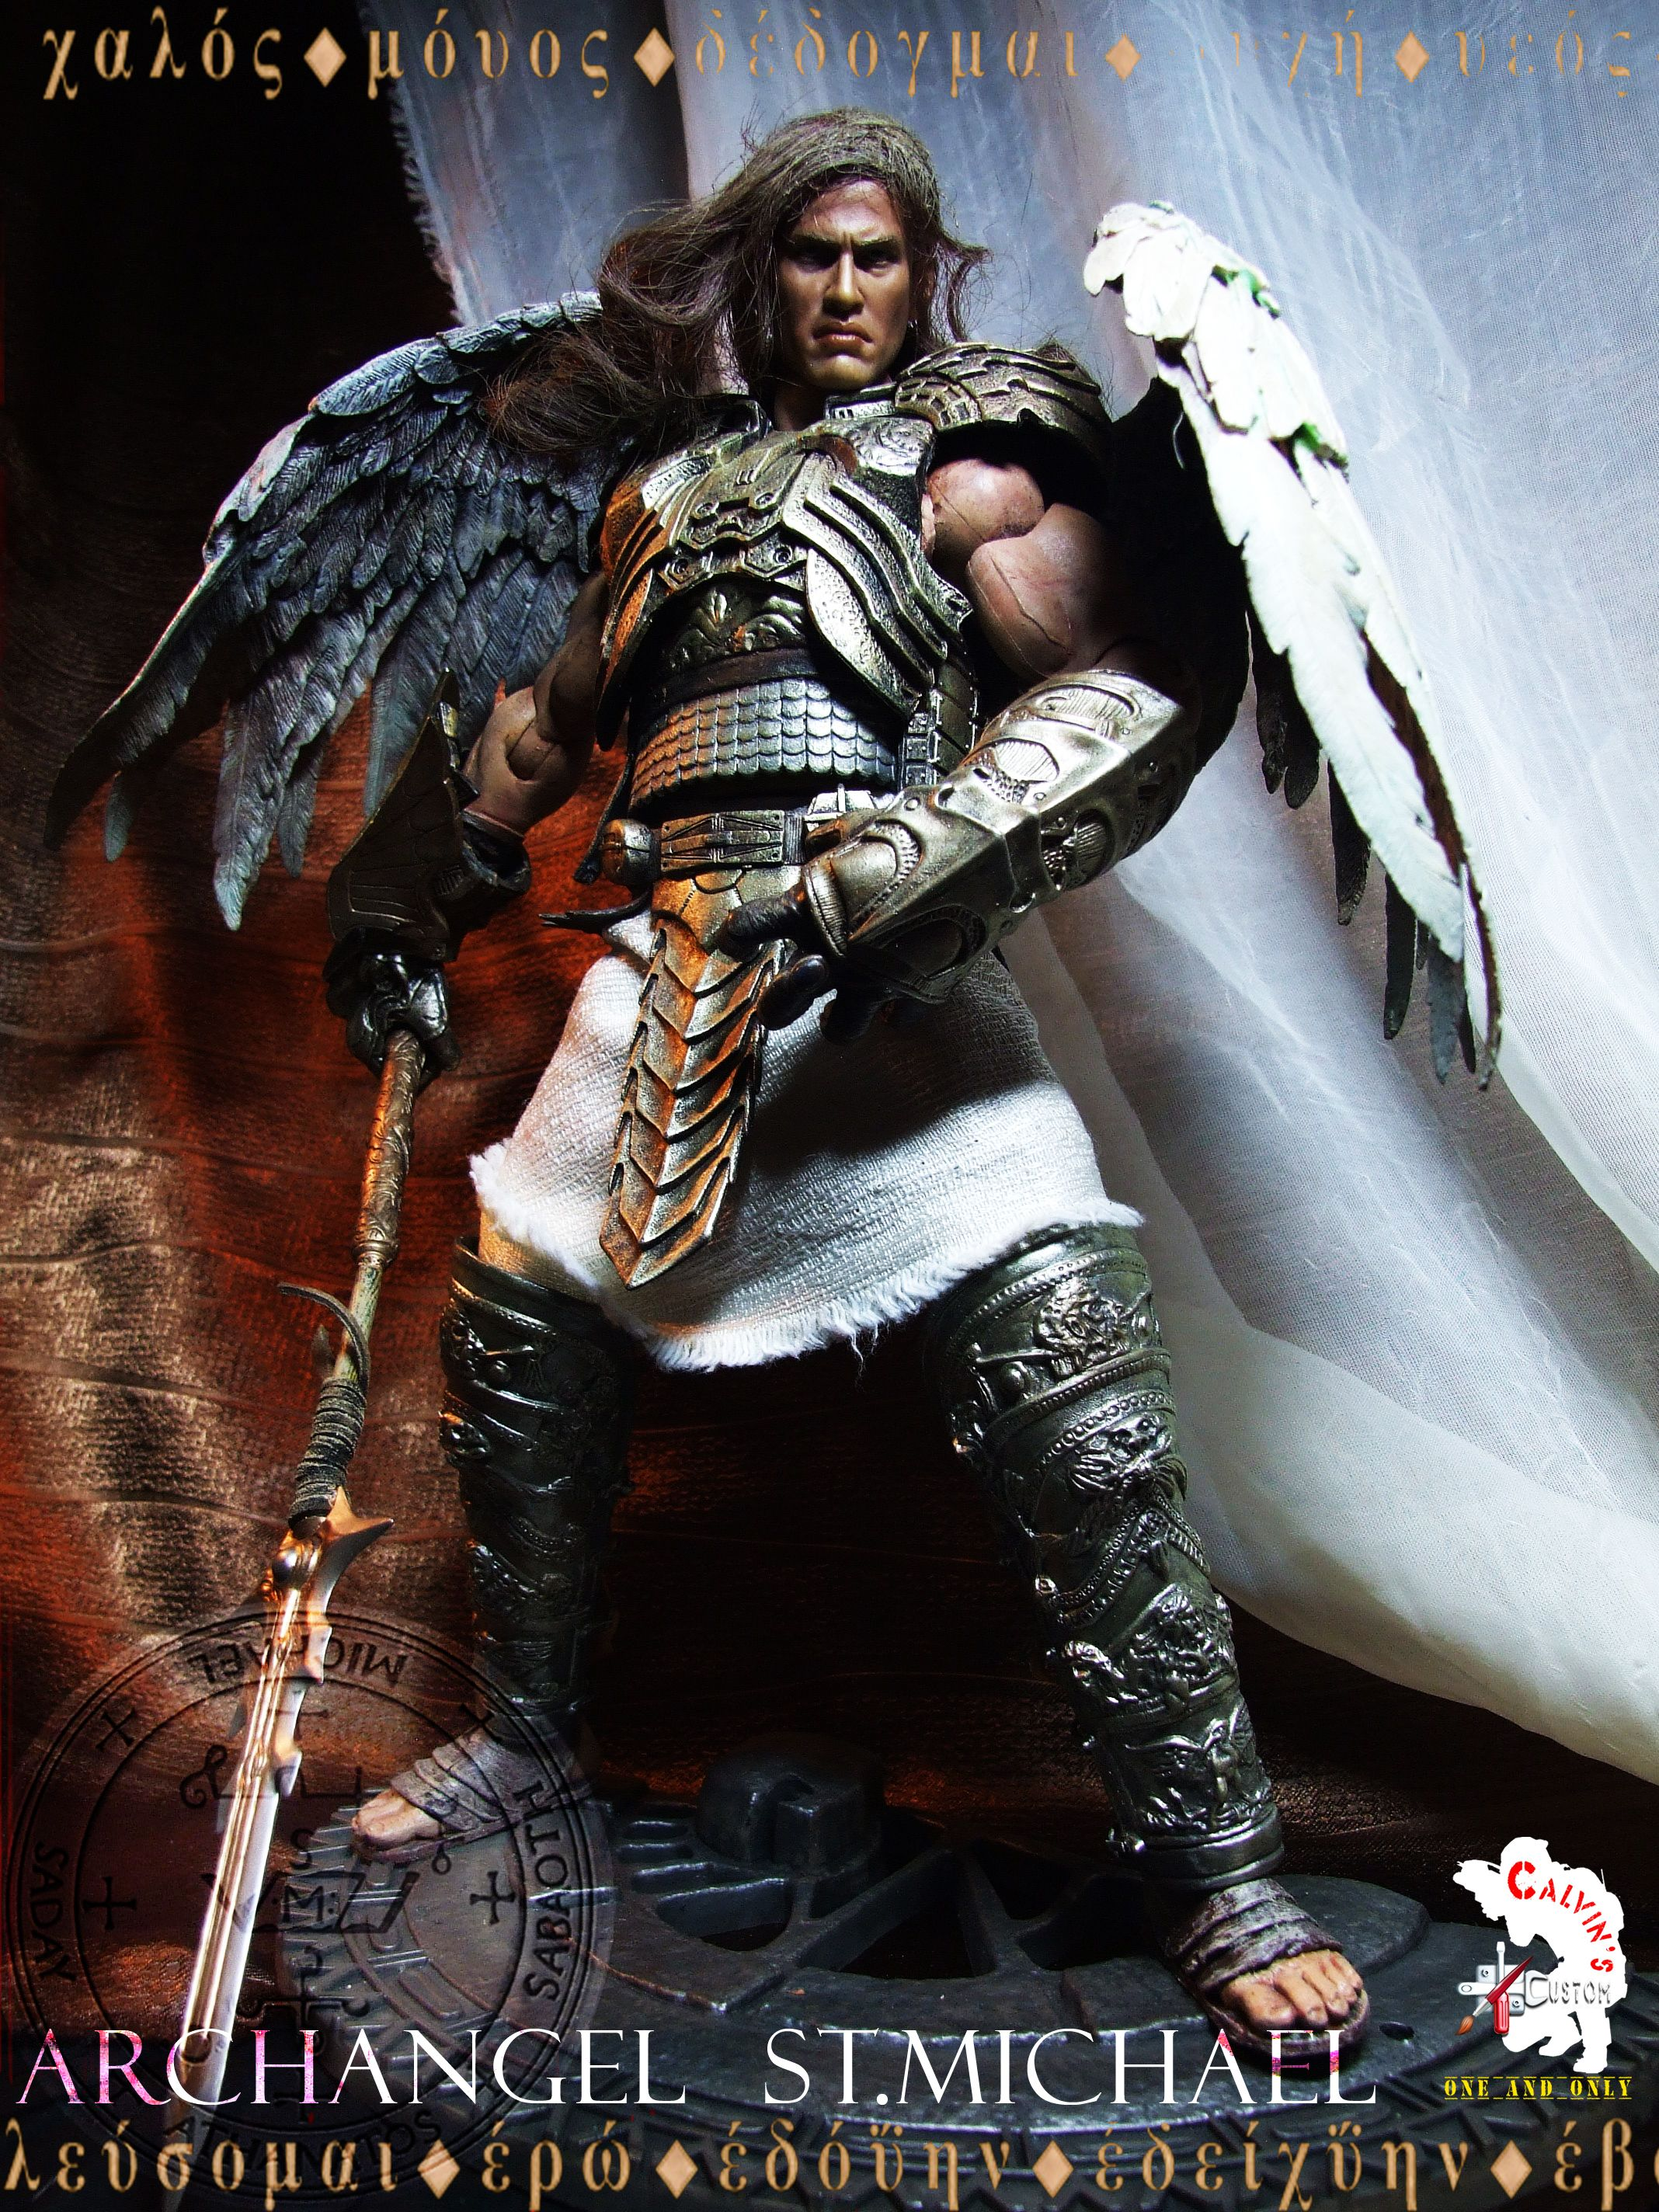 archangel michael - Google Search | costumes | Archangel ...